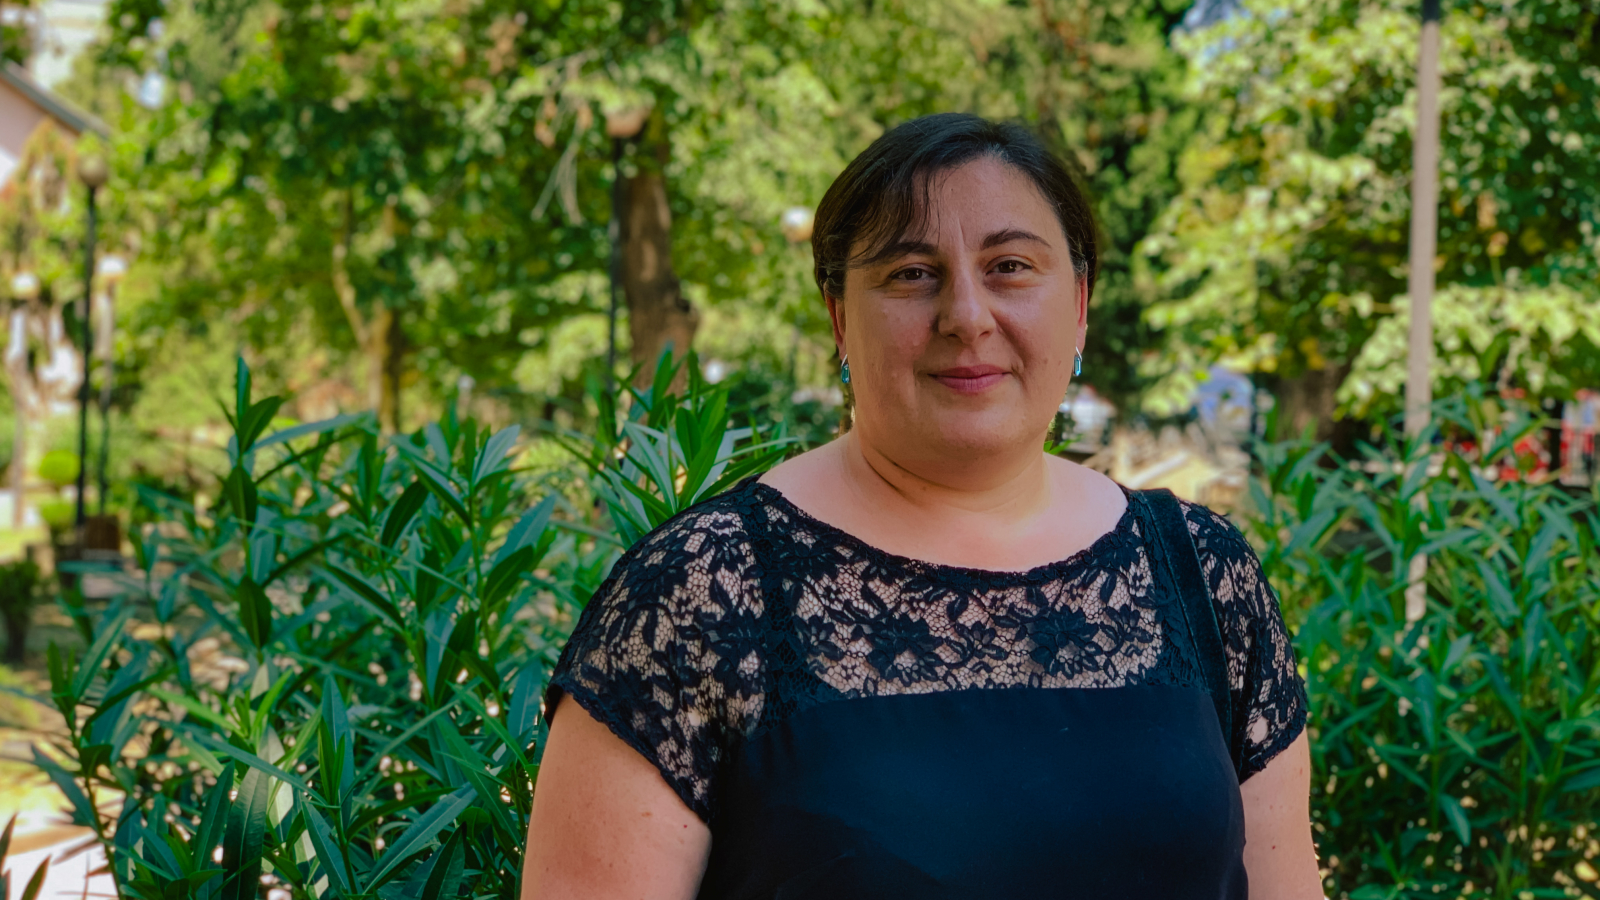 Lali Tevzadze, project coordinator at the Regional Environmental Centre for the Caucasus